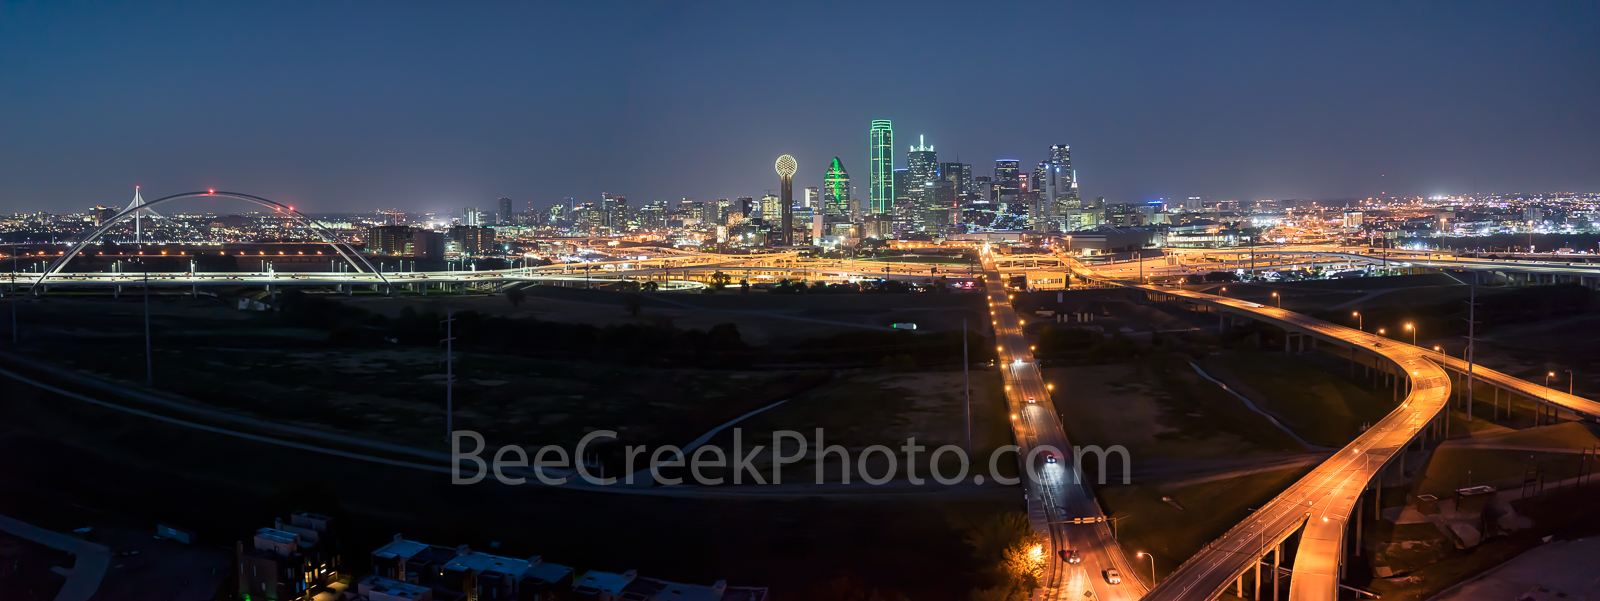 Dallas skyline, pano, panorama, dark, aerial, city, roads, downtown, Trinity river, Margaret Hunt Hill Bridge, Margaret McDermott bridge, skyscrapers, Bank of America, landmark, Reunion tower, Comeric, photo